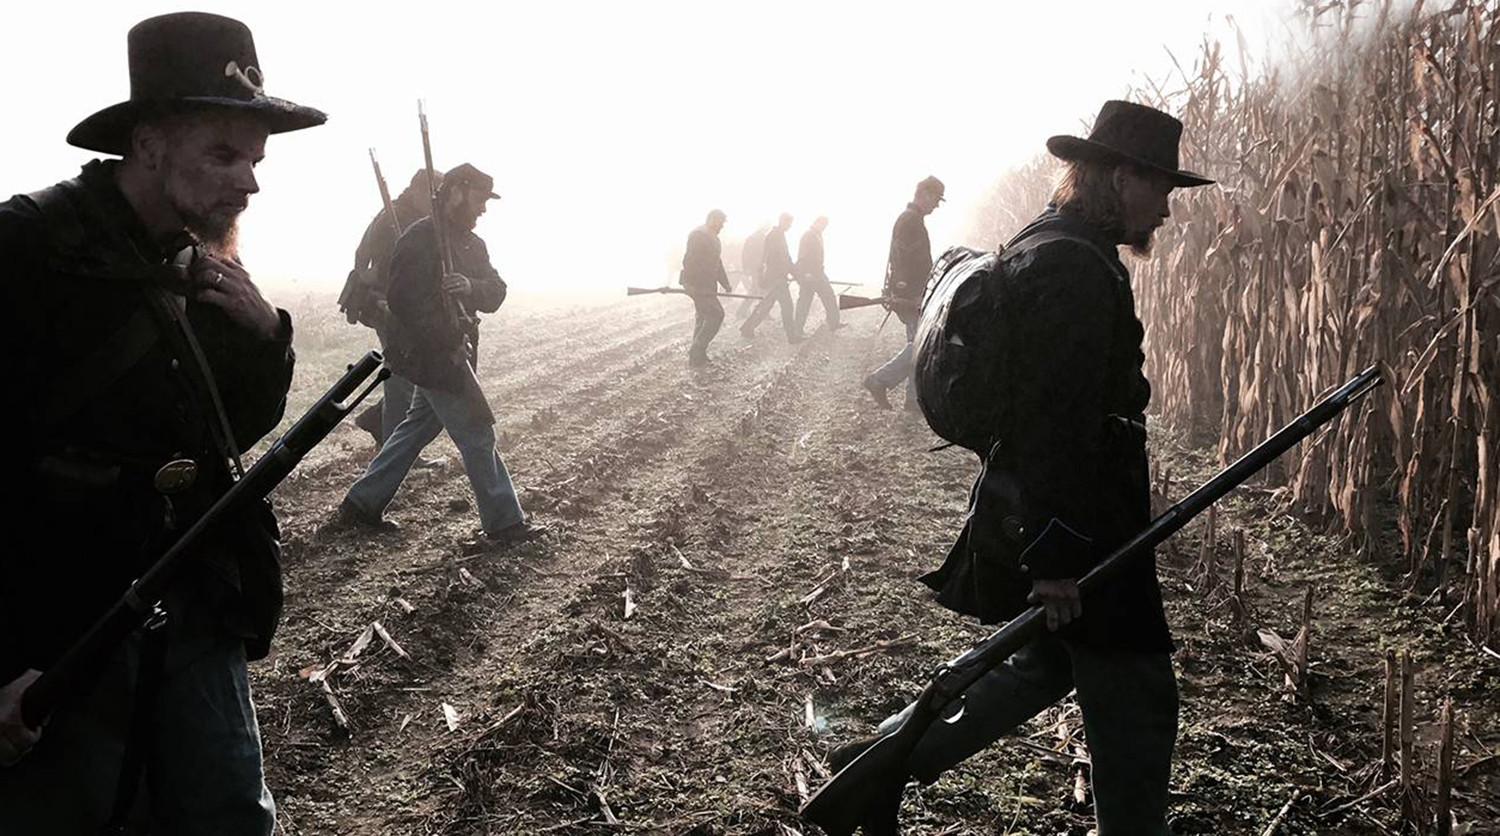 soldiers walking in field, My Brother's Keeper